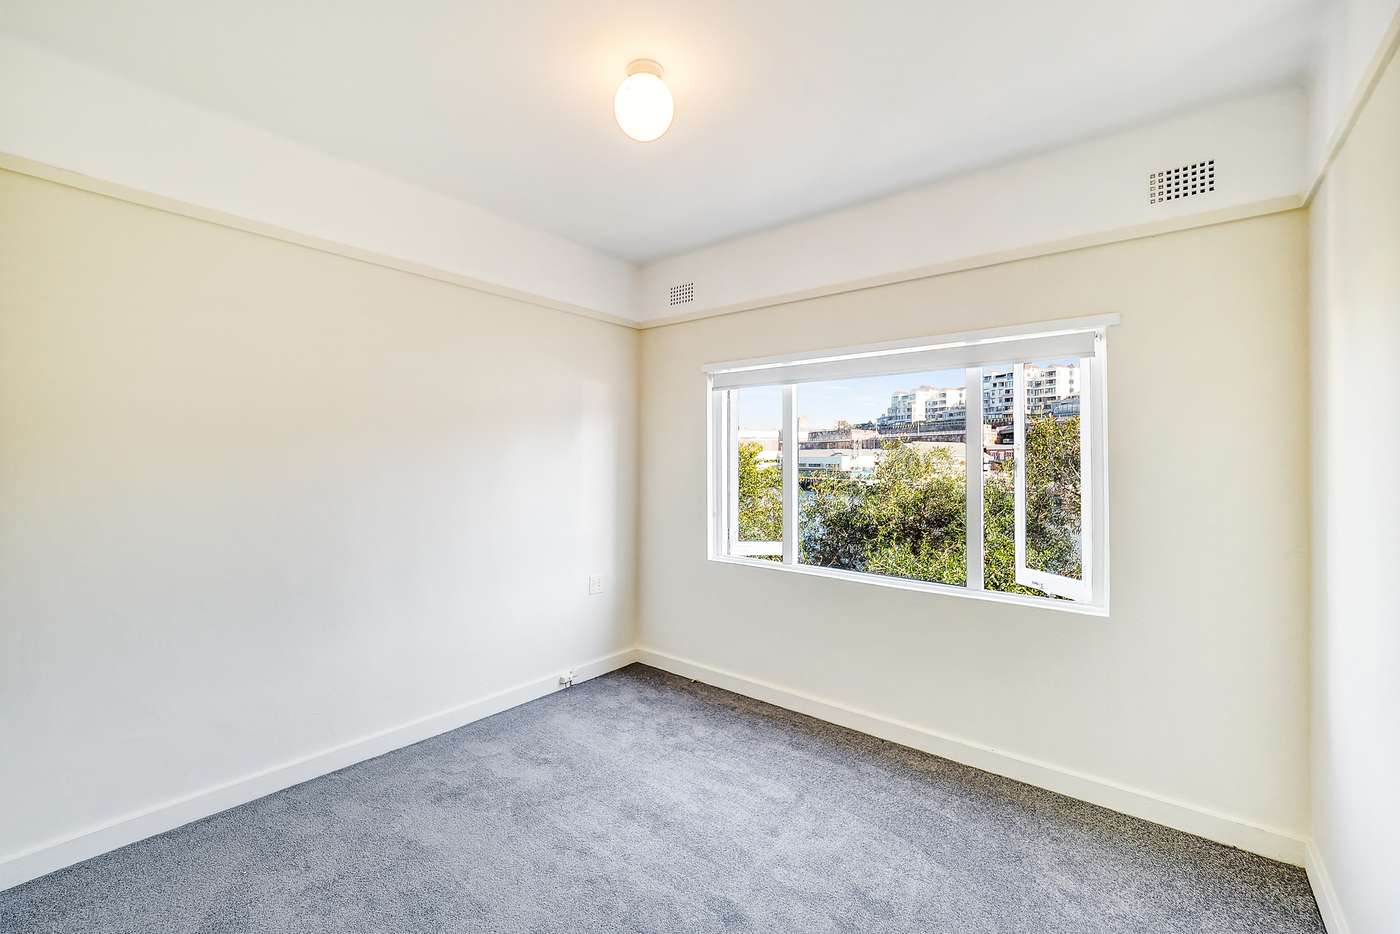 Sixth view of Homely apartment listing, 2/2 Ben Boyd Road, Neutral Bay NSW 2089